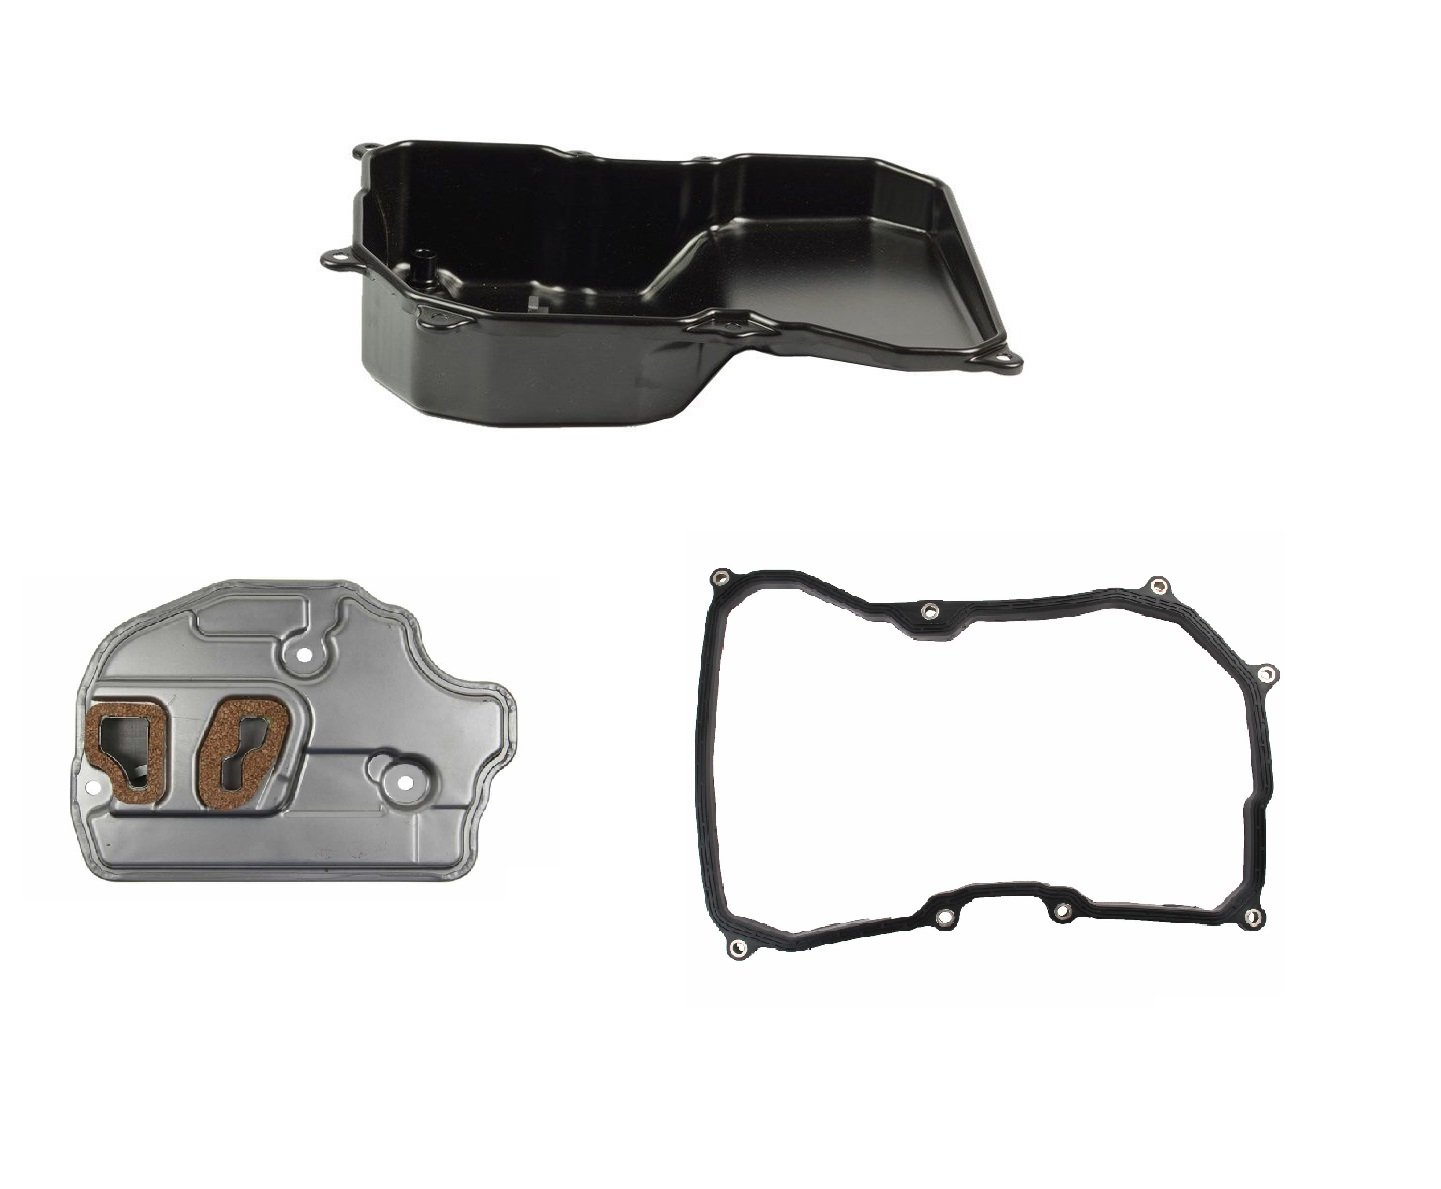 New Transmission Oil Pan+Gasket+Filter VW Beetle CC Golf Jetta Passat Rabbit